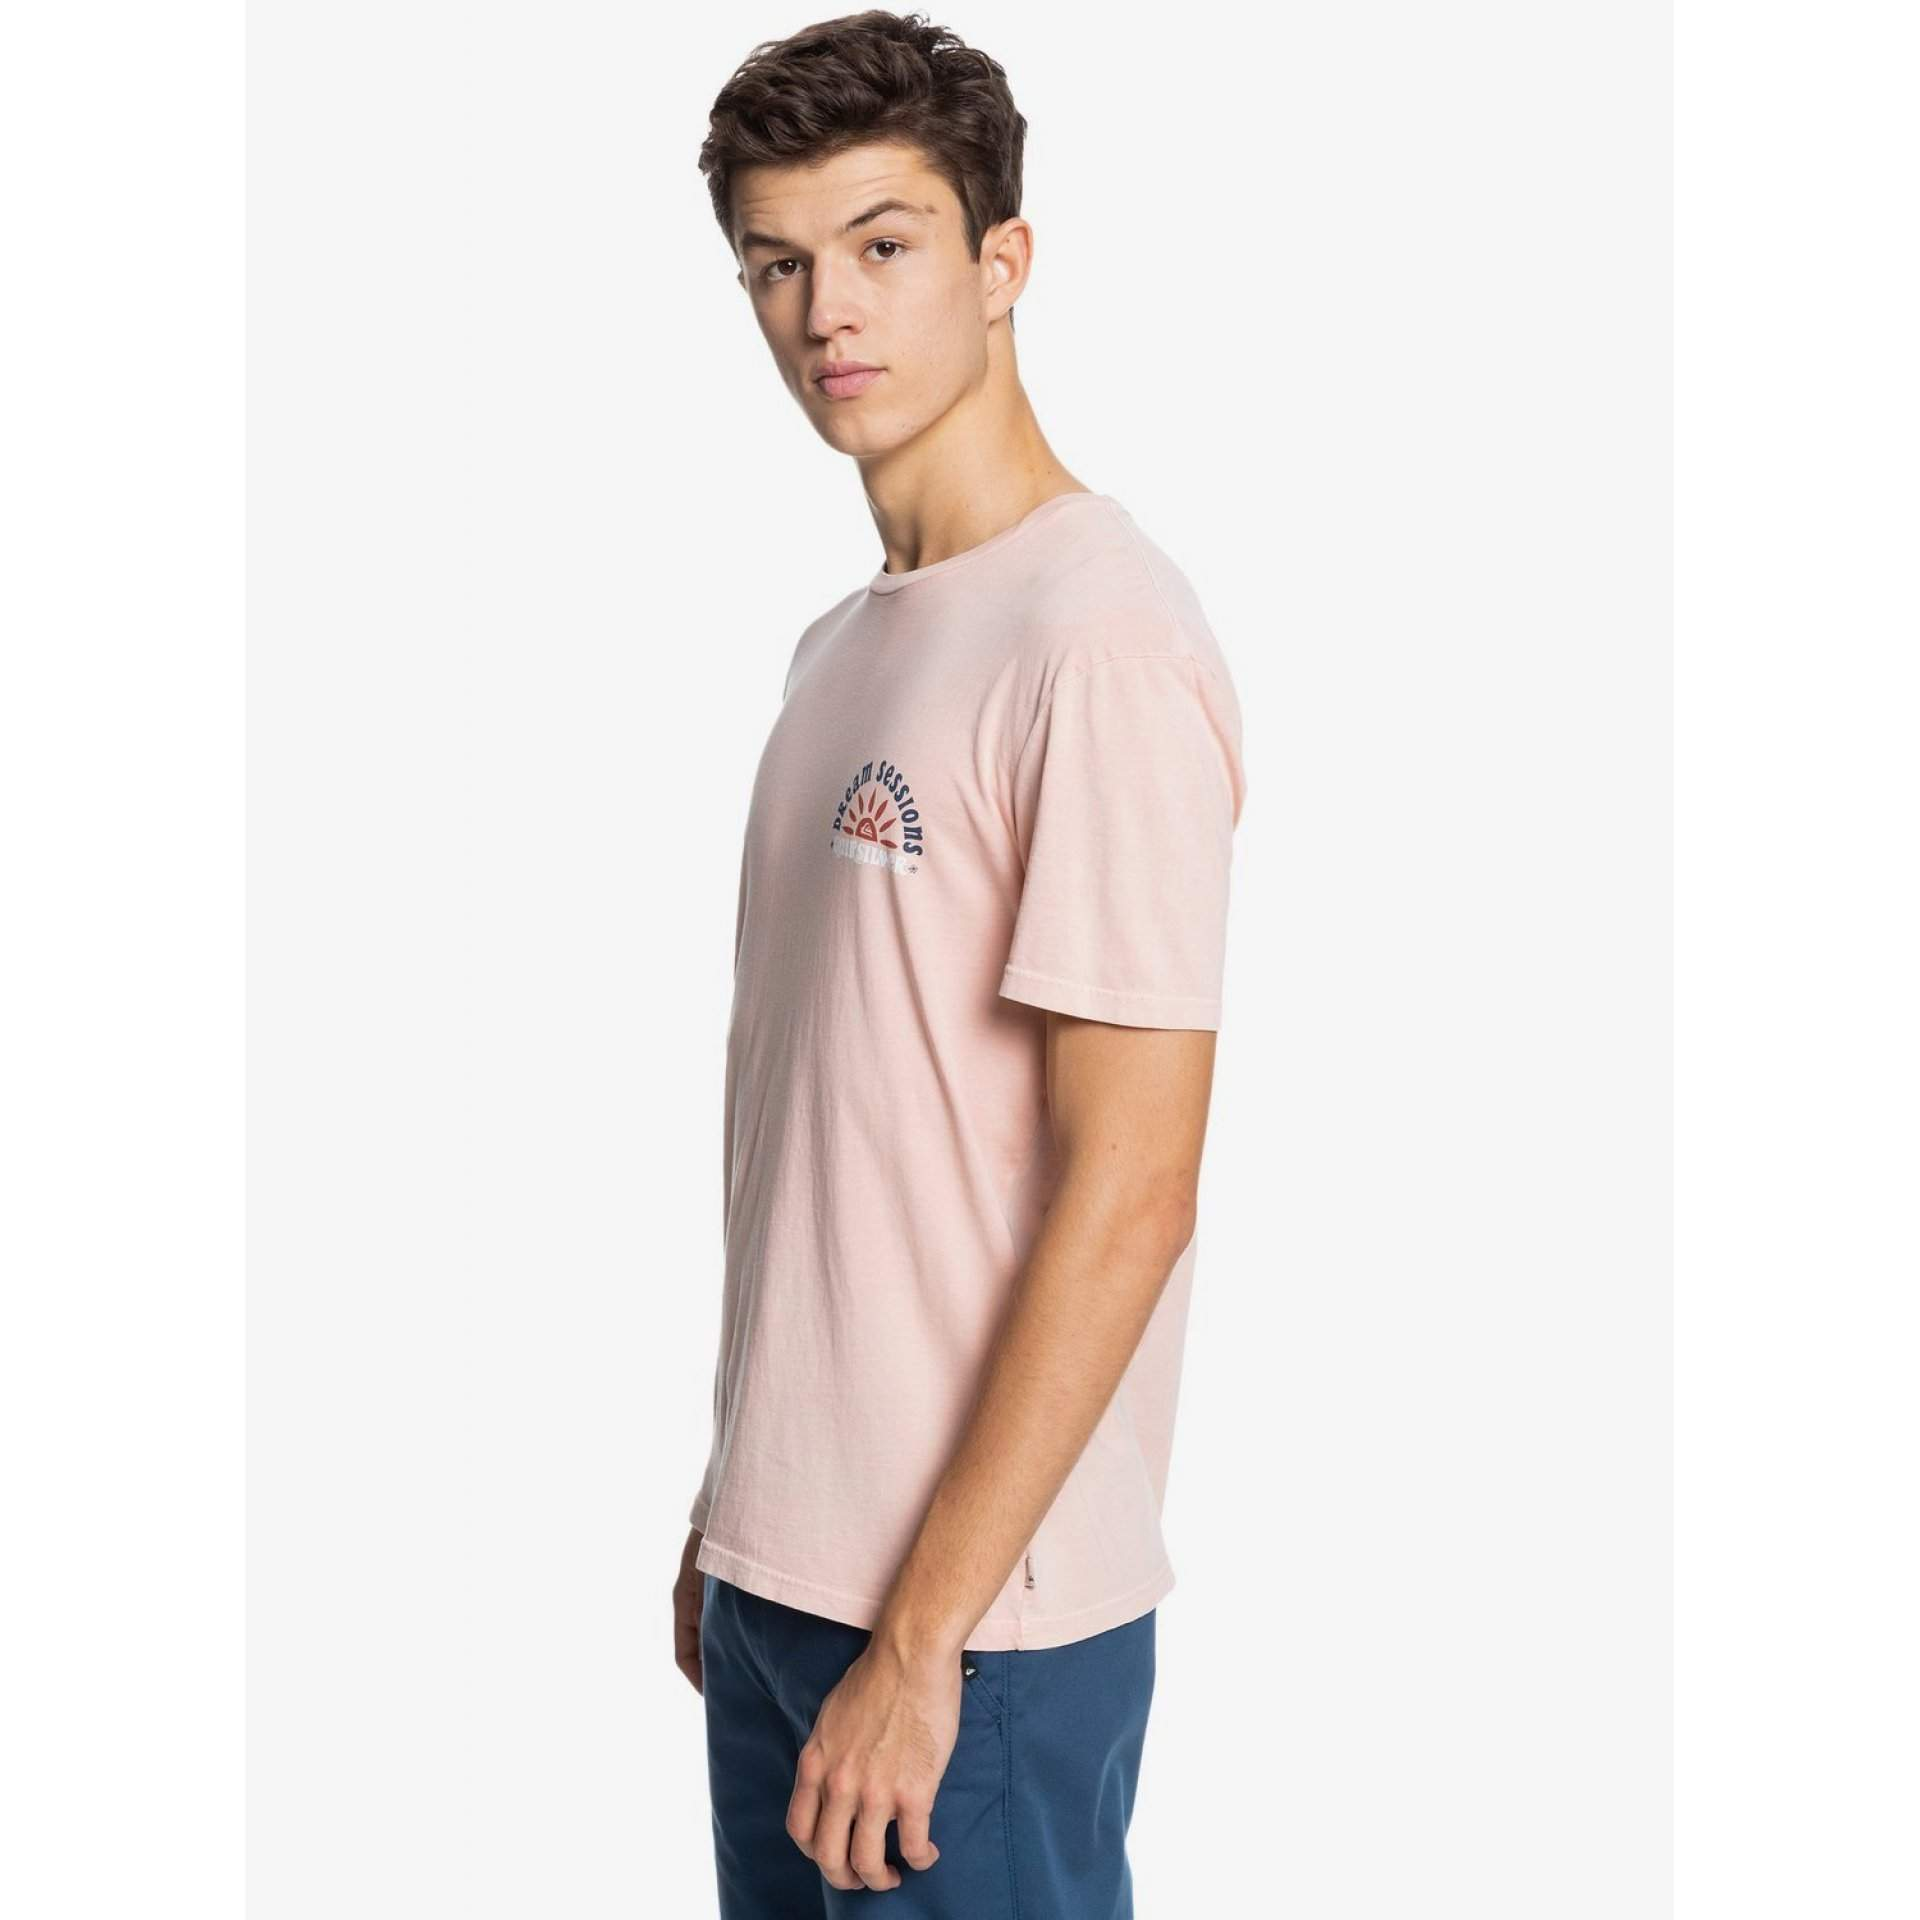 T-SHIRT QUIKSILVER DREAM SESSIONS EQYZT06364 MISTY ROSE MGY0 Z BOKU